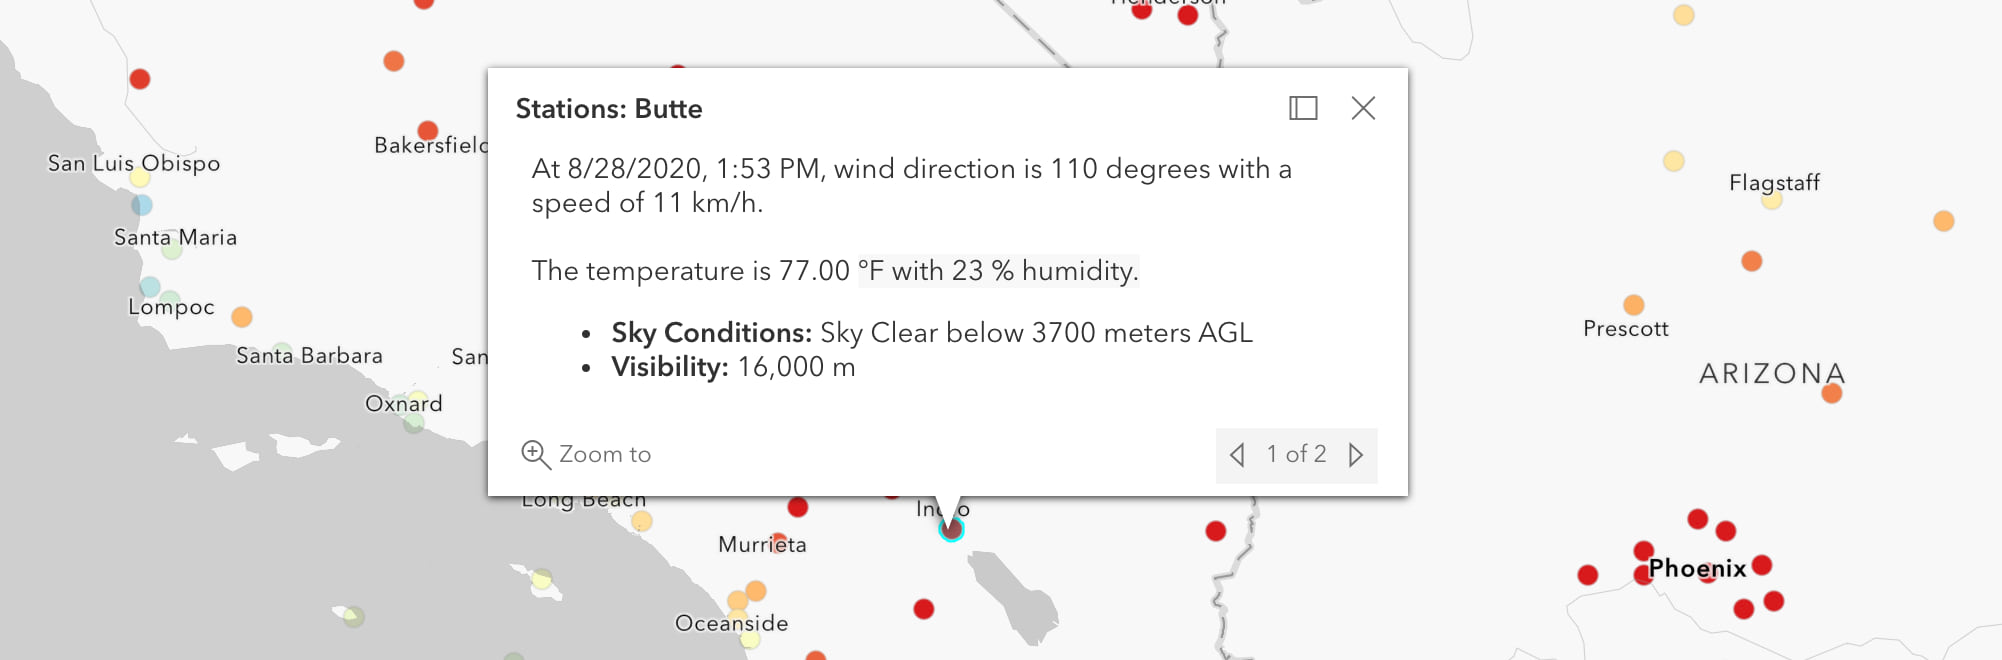 The popup defined on the Current Weather and Wind Station Data layer in the Living Atlas. The Living Atlas contains hundreds of authoritative layers with popups already configured and ready to use in production web apps.